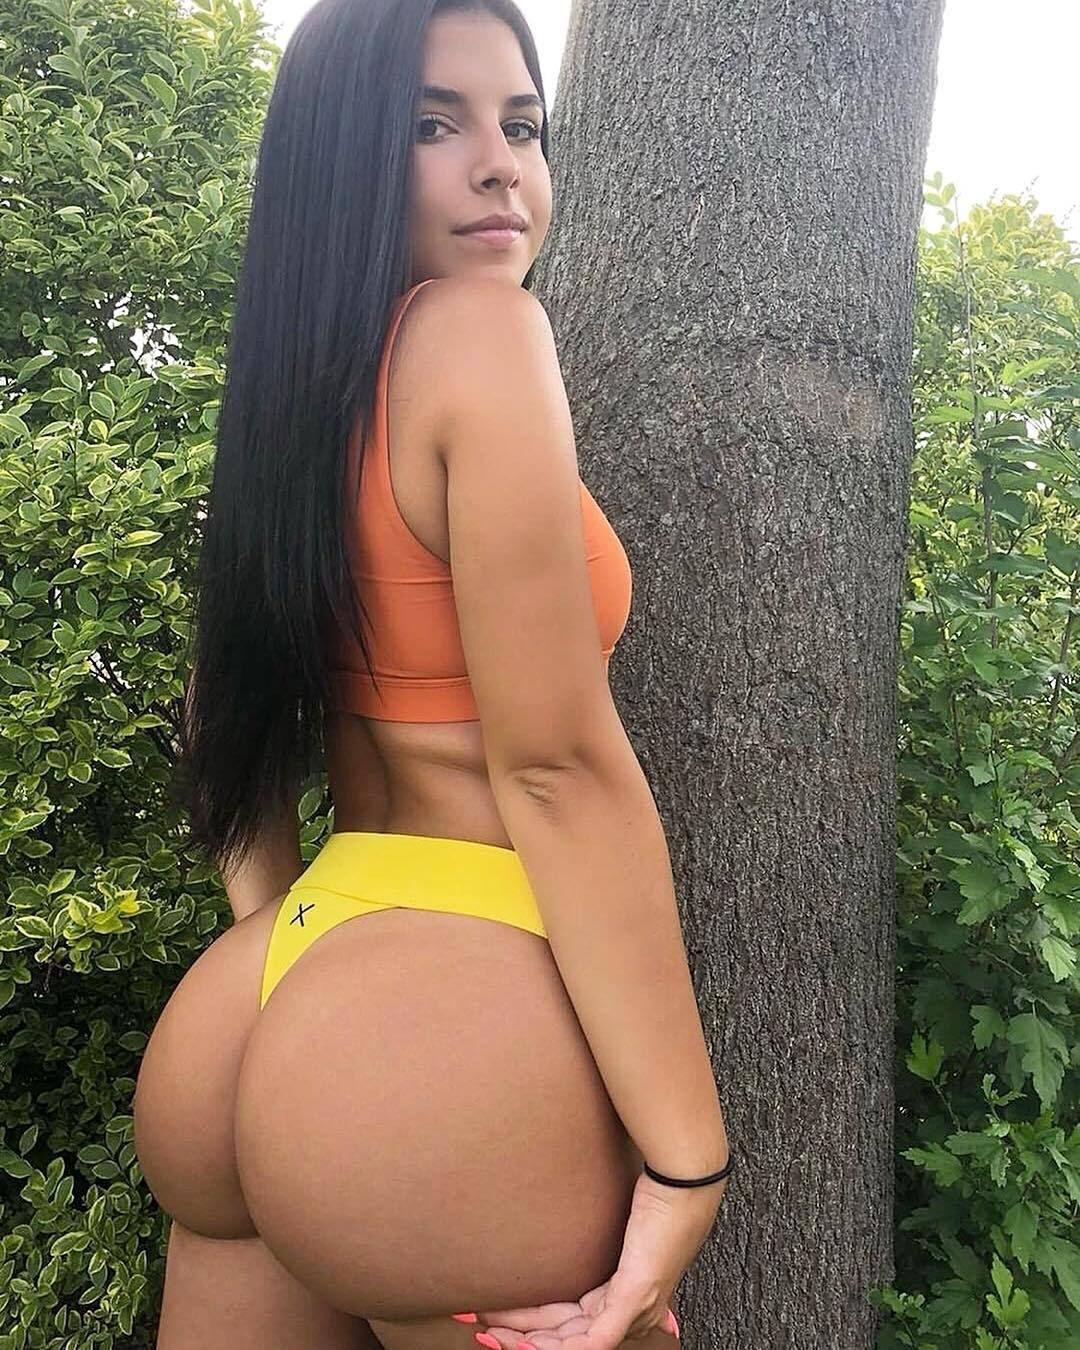 live chat with sexy women